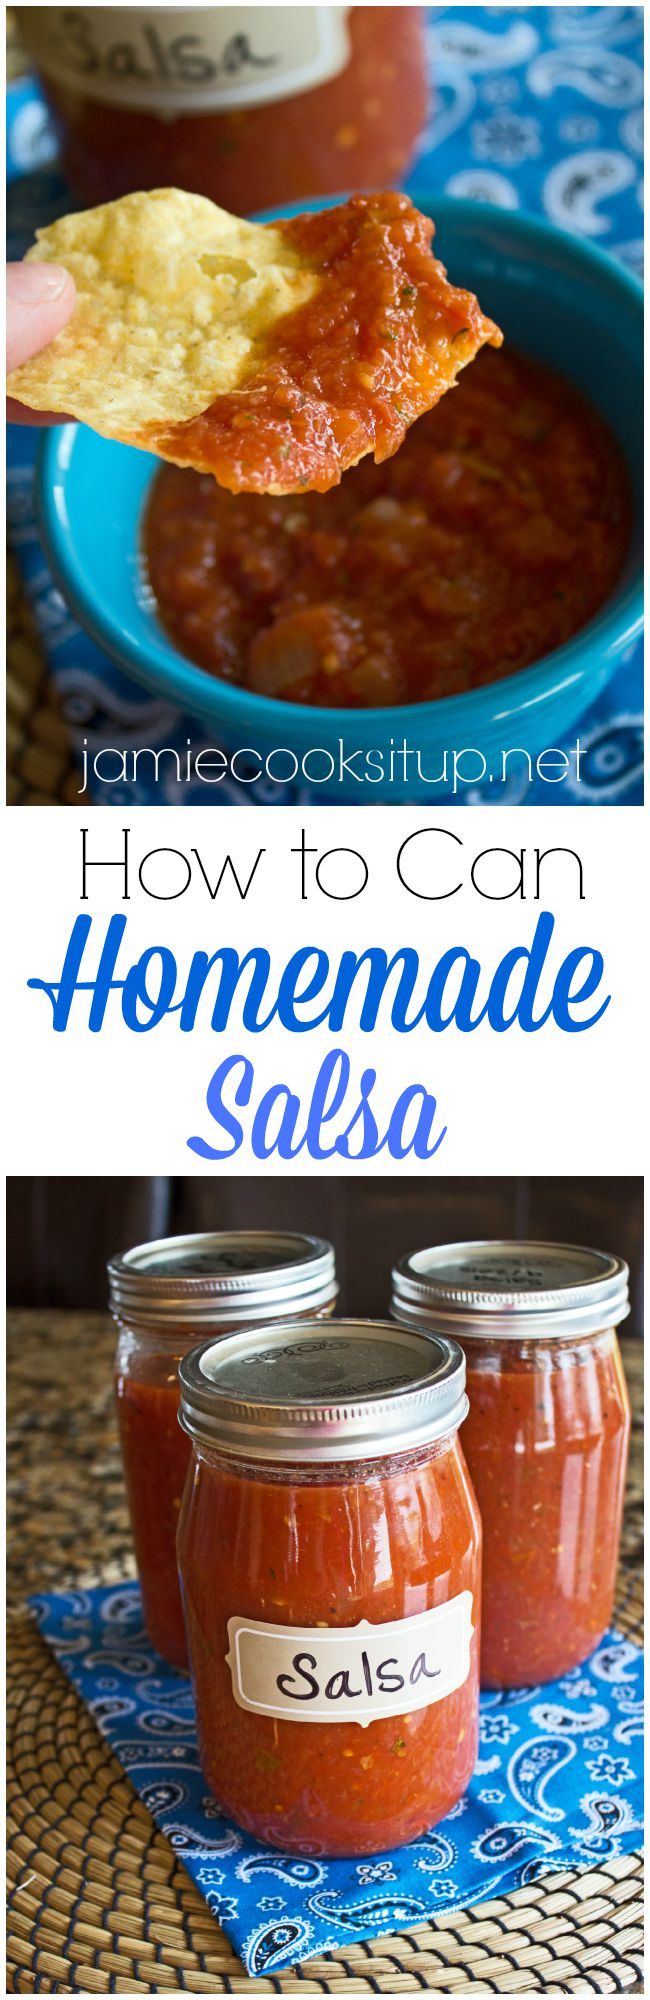 How To Can Homemade Salsa from Jamie Cooks It Up!